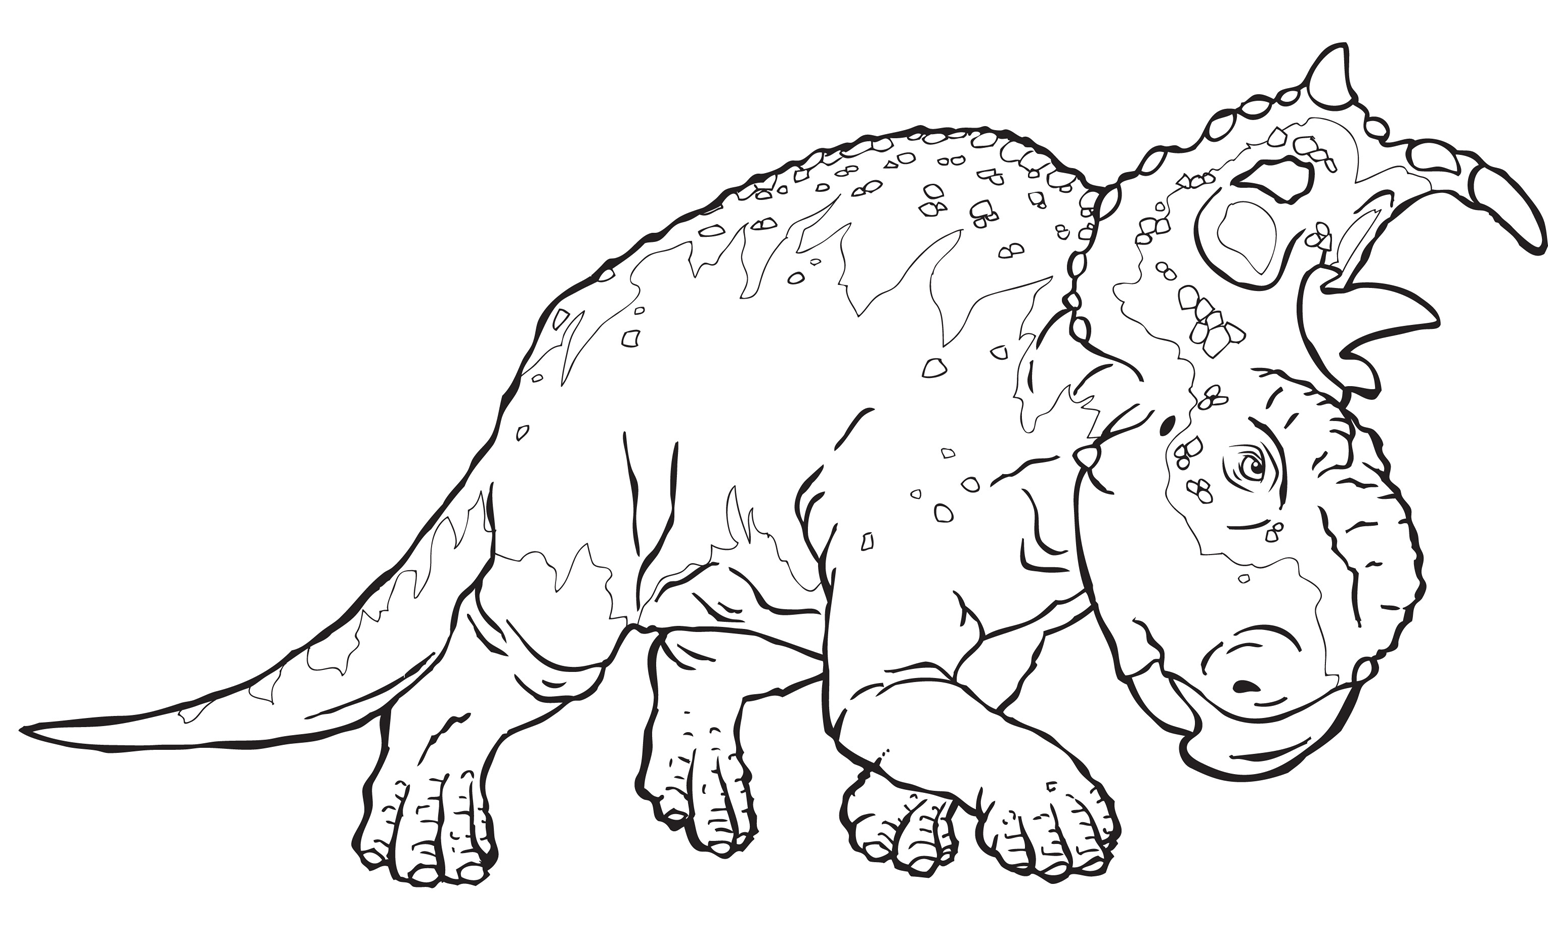 Quot Walking With Dinosaurs Quot Coloring Pages